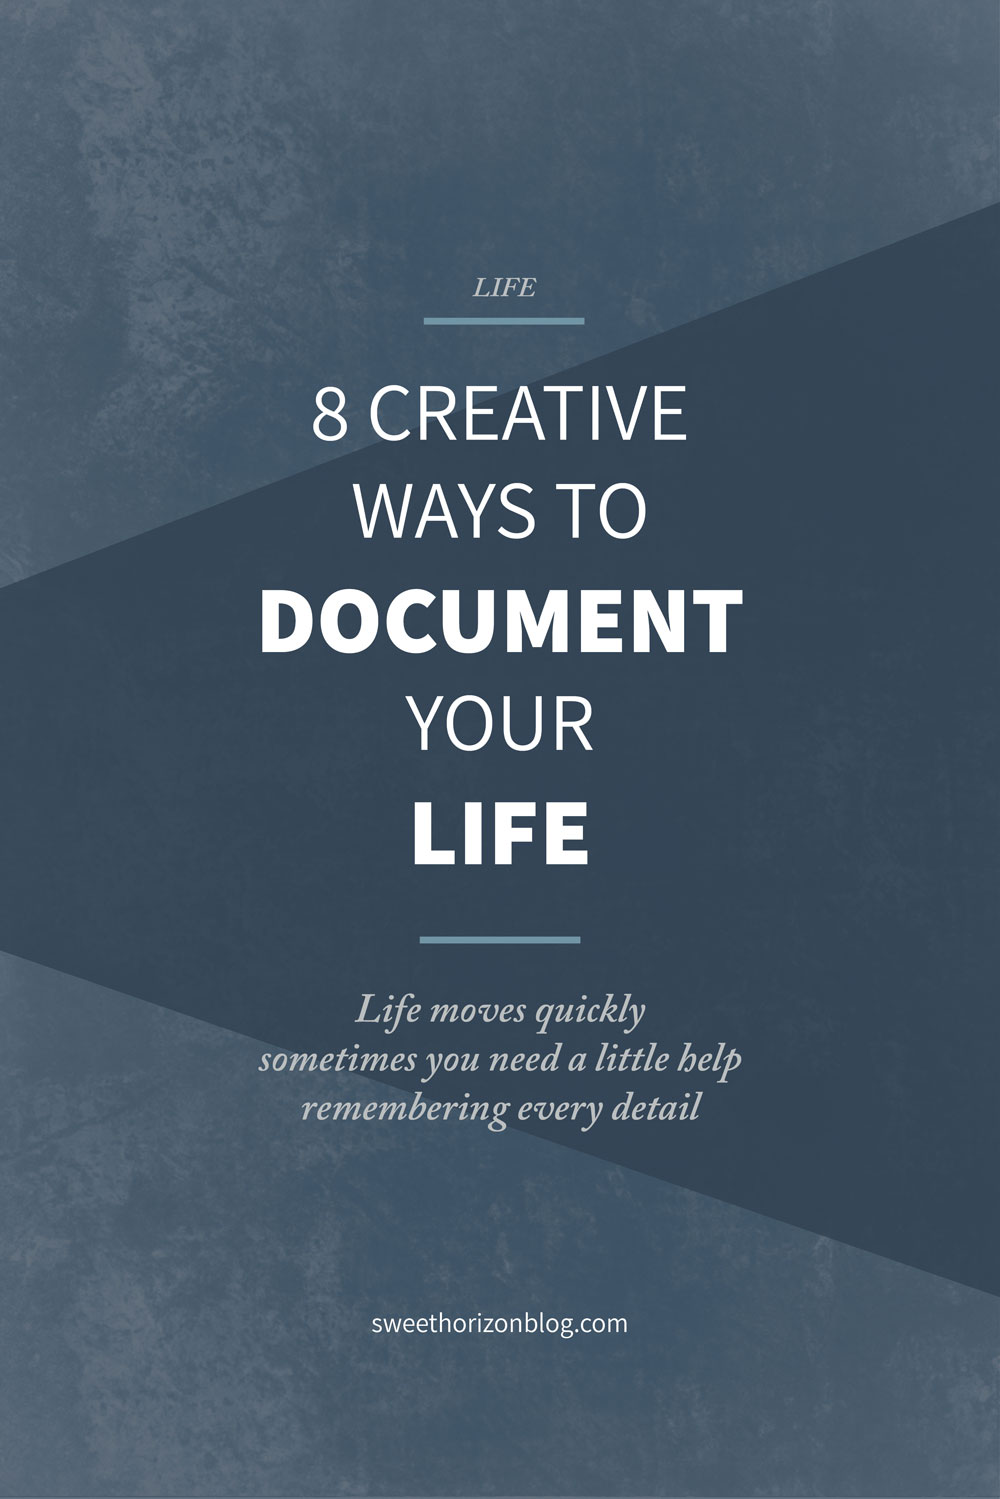 8 Creative Ways to Document Your Life from www.sweethorizonblog.com